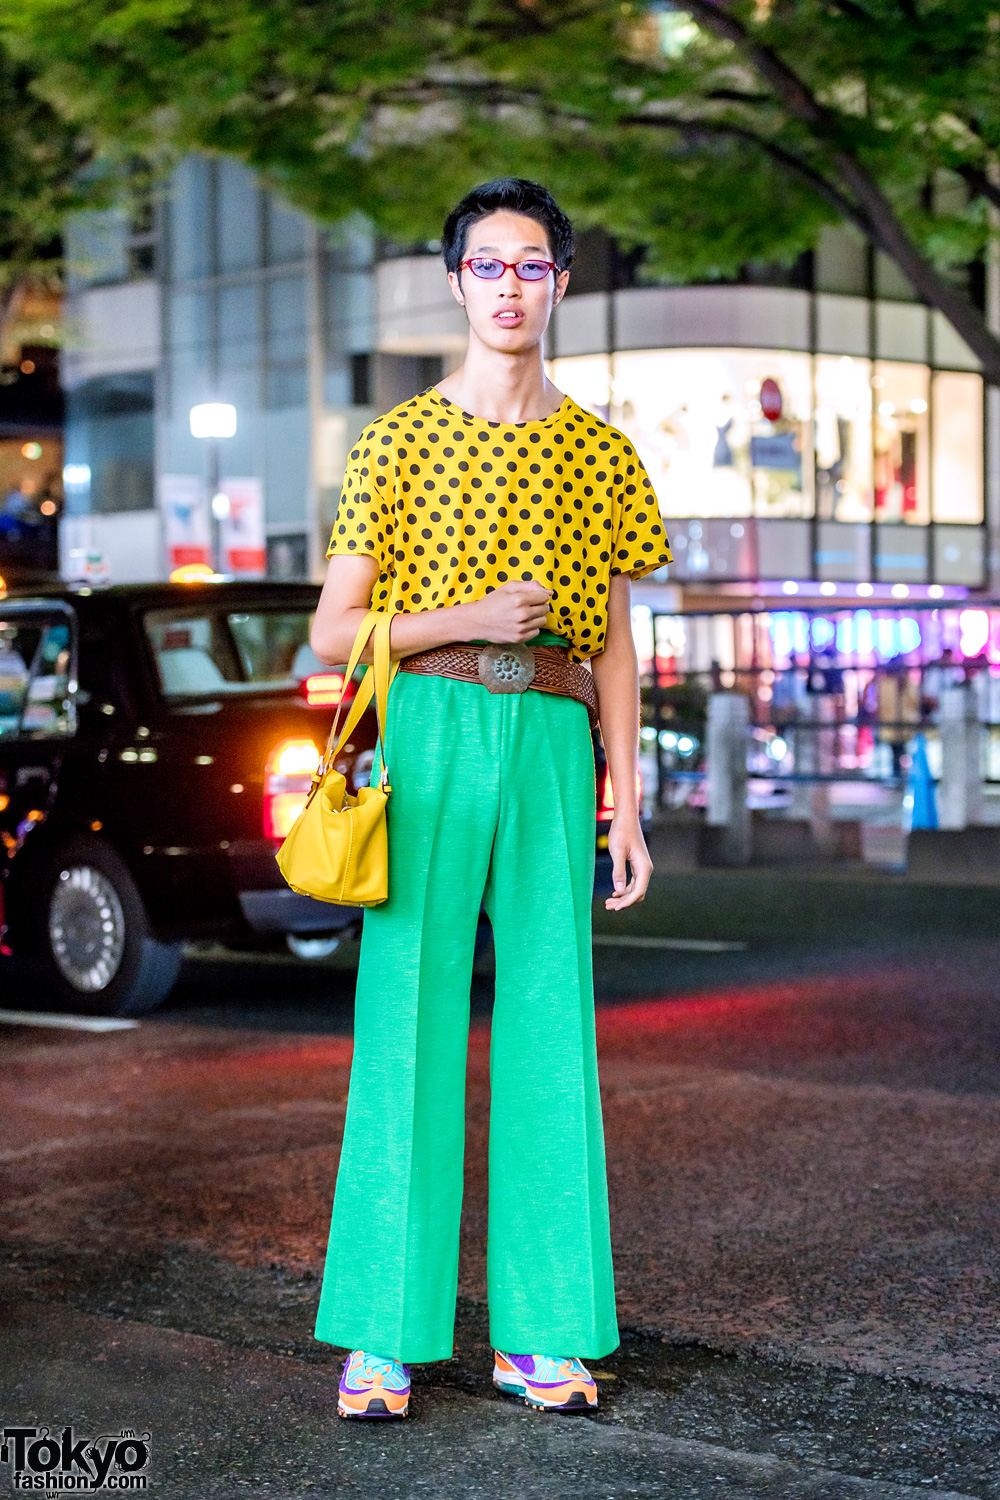 07de2fb7 Colorful Retro Japanese Street Style in Harajuku w/ Vintage Fashion & Nike  Sneakers